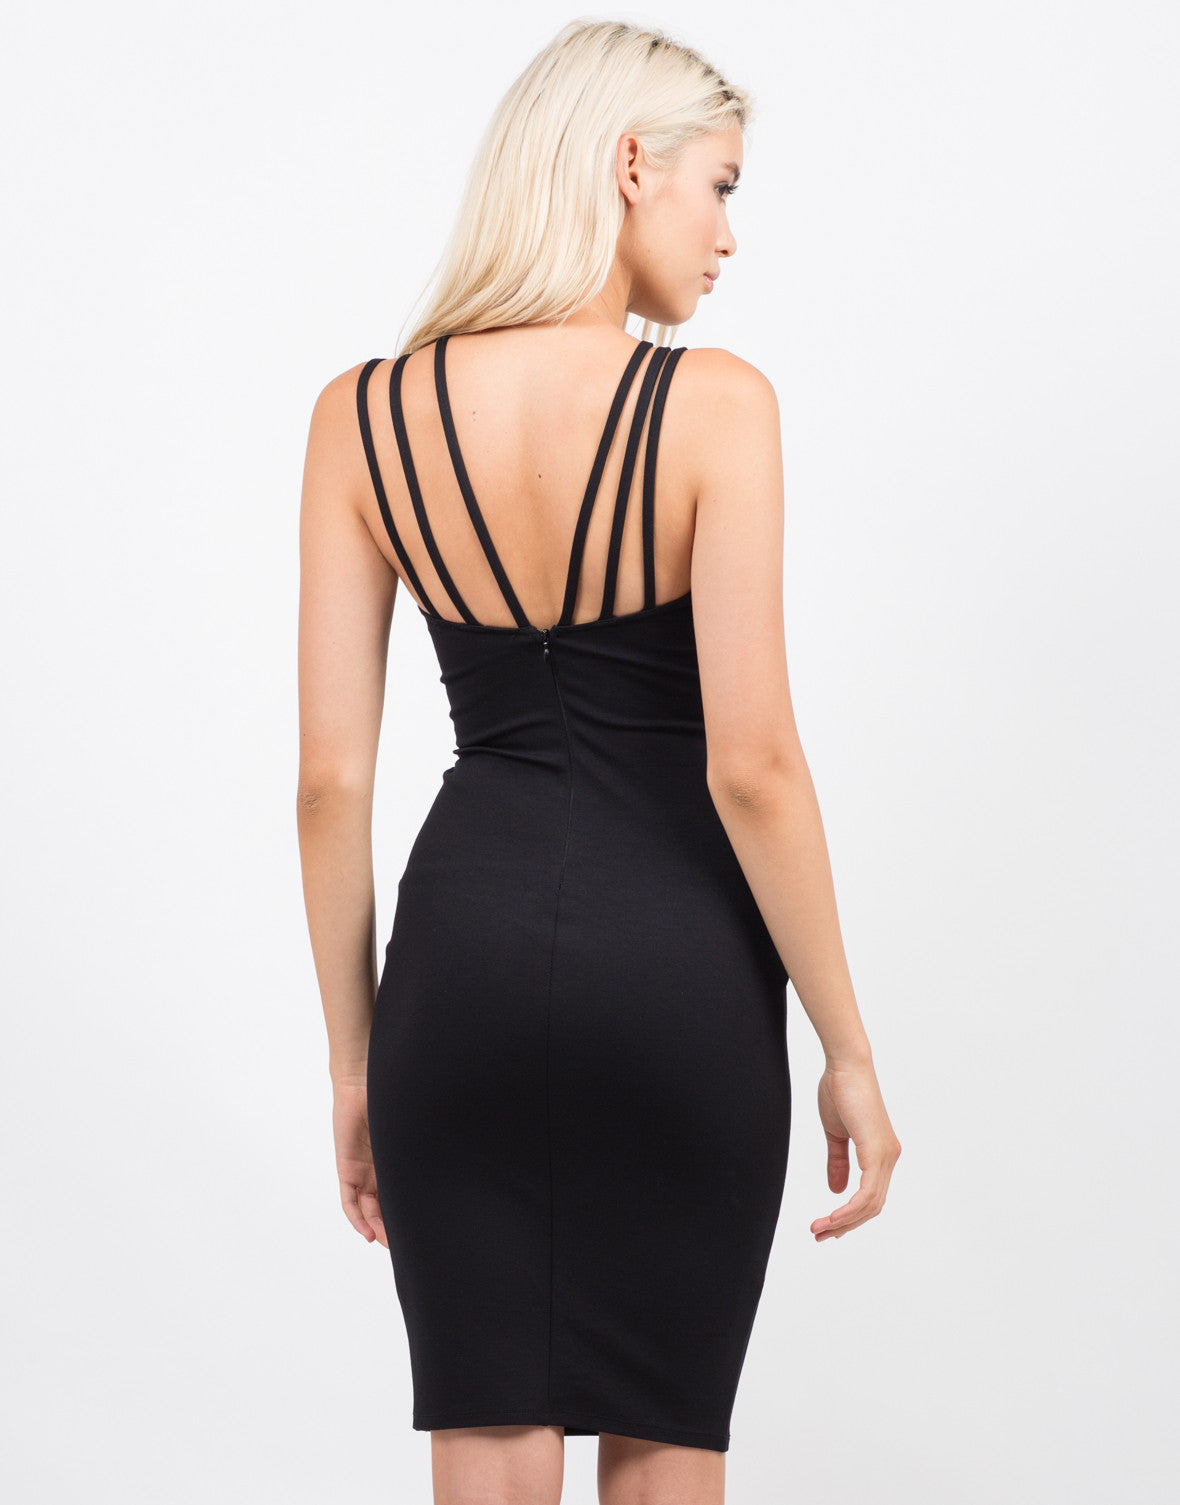 Back View of Strappy Bodycon Dress